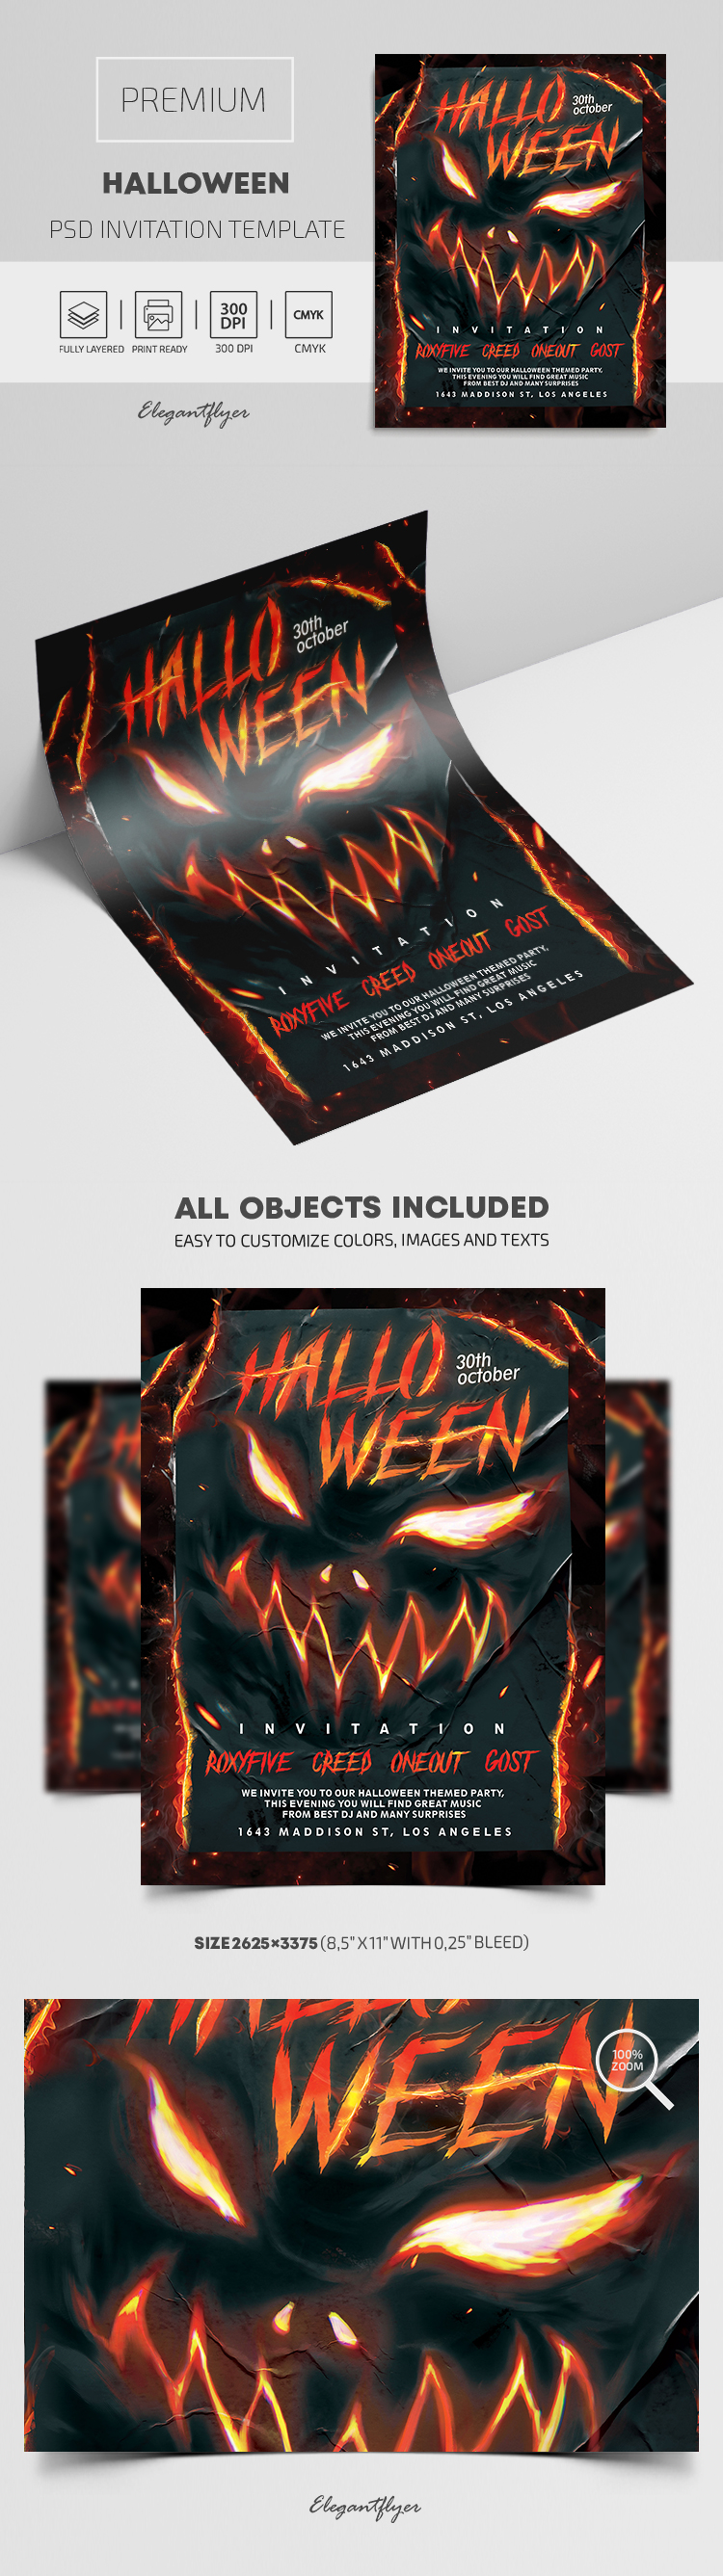 Premium Halloween Invitation PSD Template